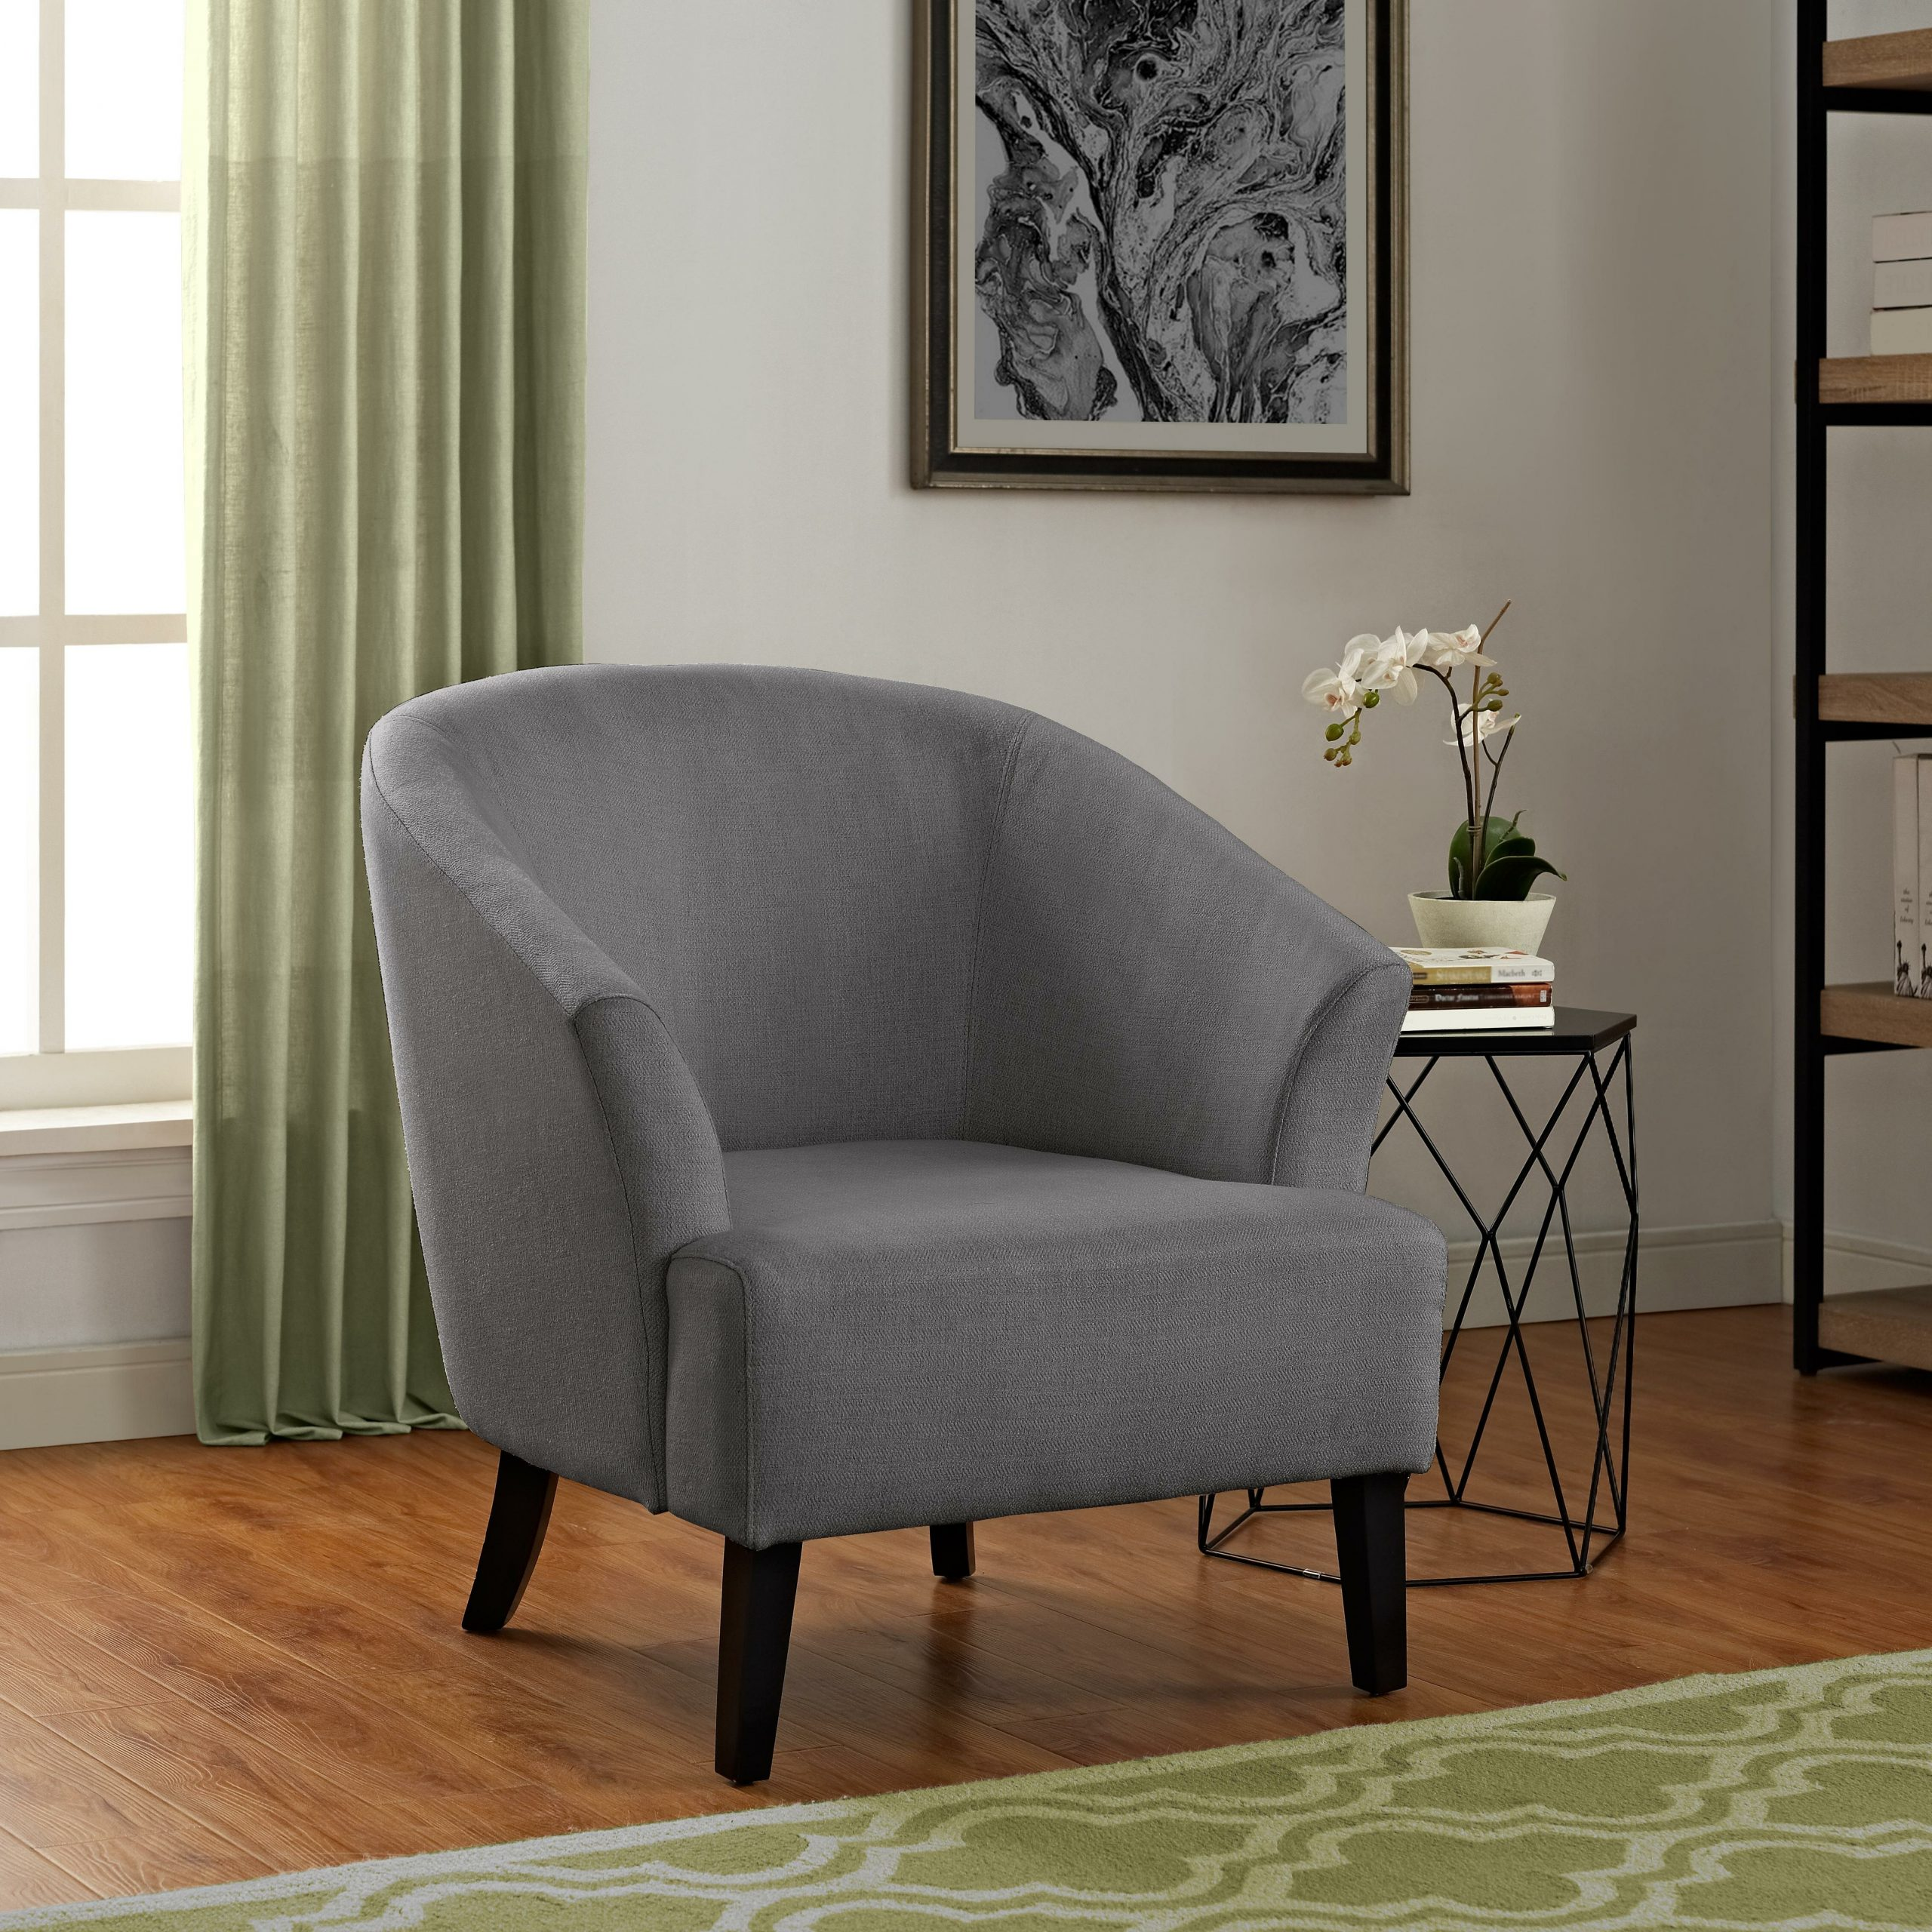 Navin Barrel Chairs Pertaining To Well Known Artesia Barrel Chair (View 9 of 20)